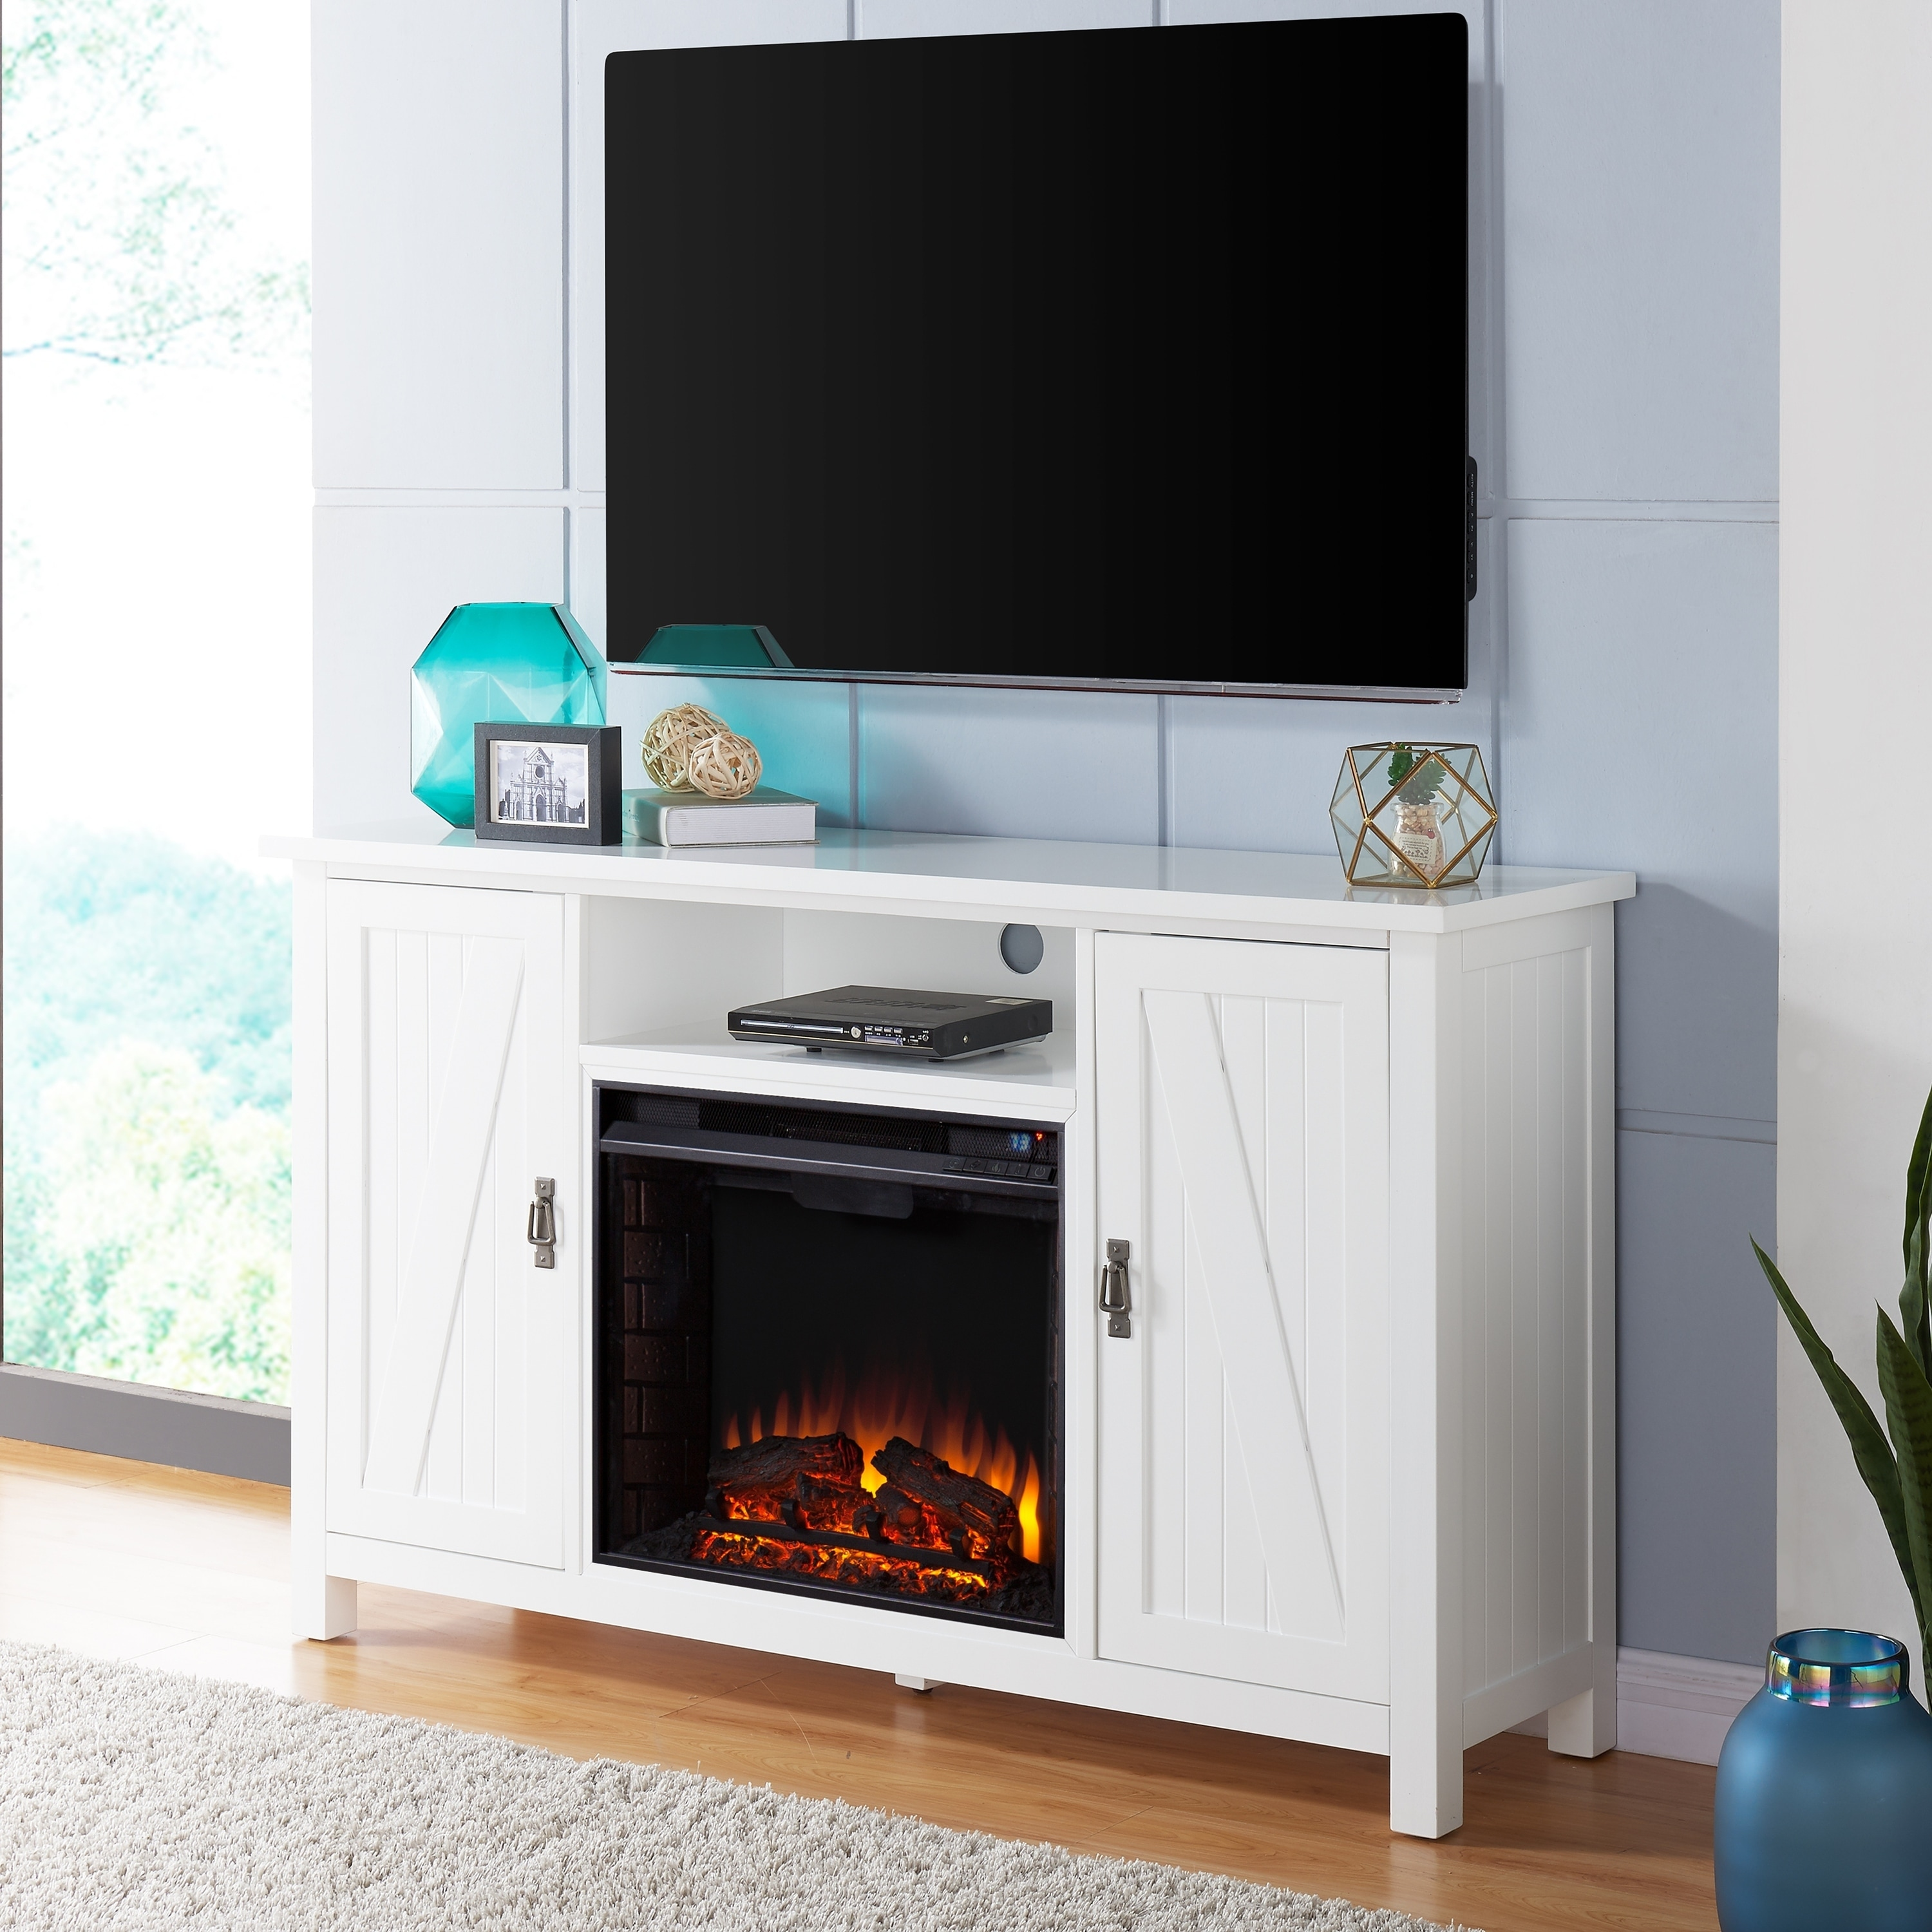 Harper Blvd Colwell Farmhouse Style Electric Fireplace TV Stand - White